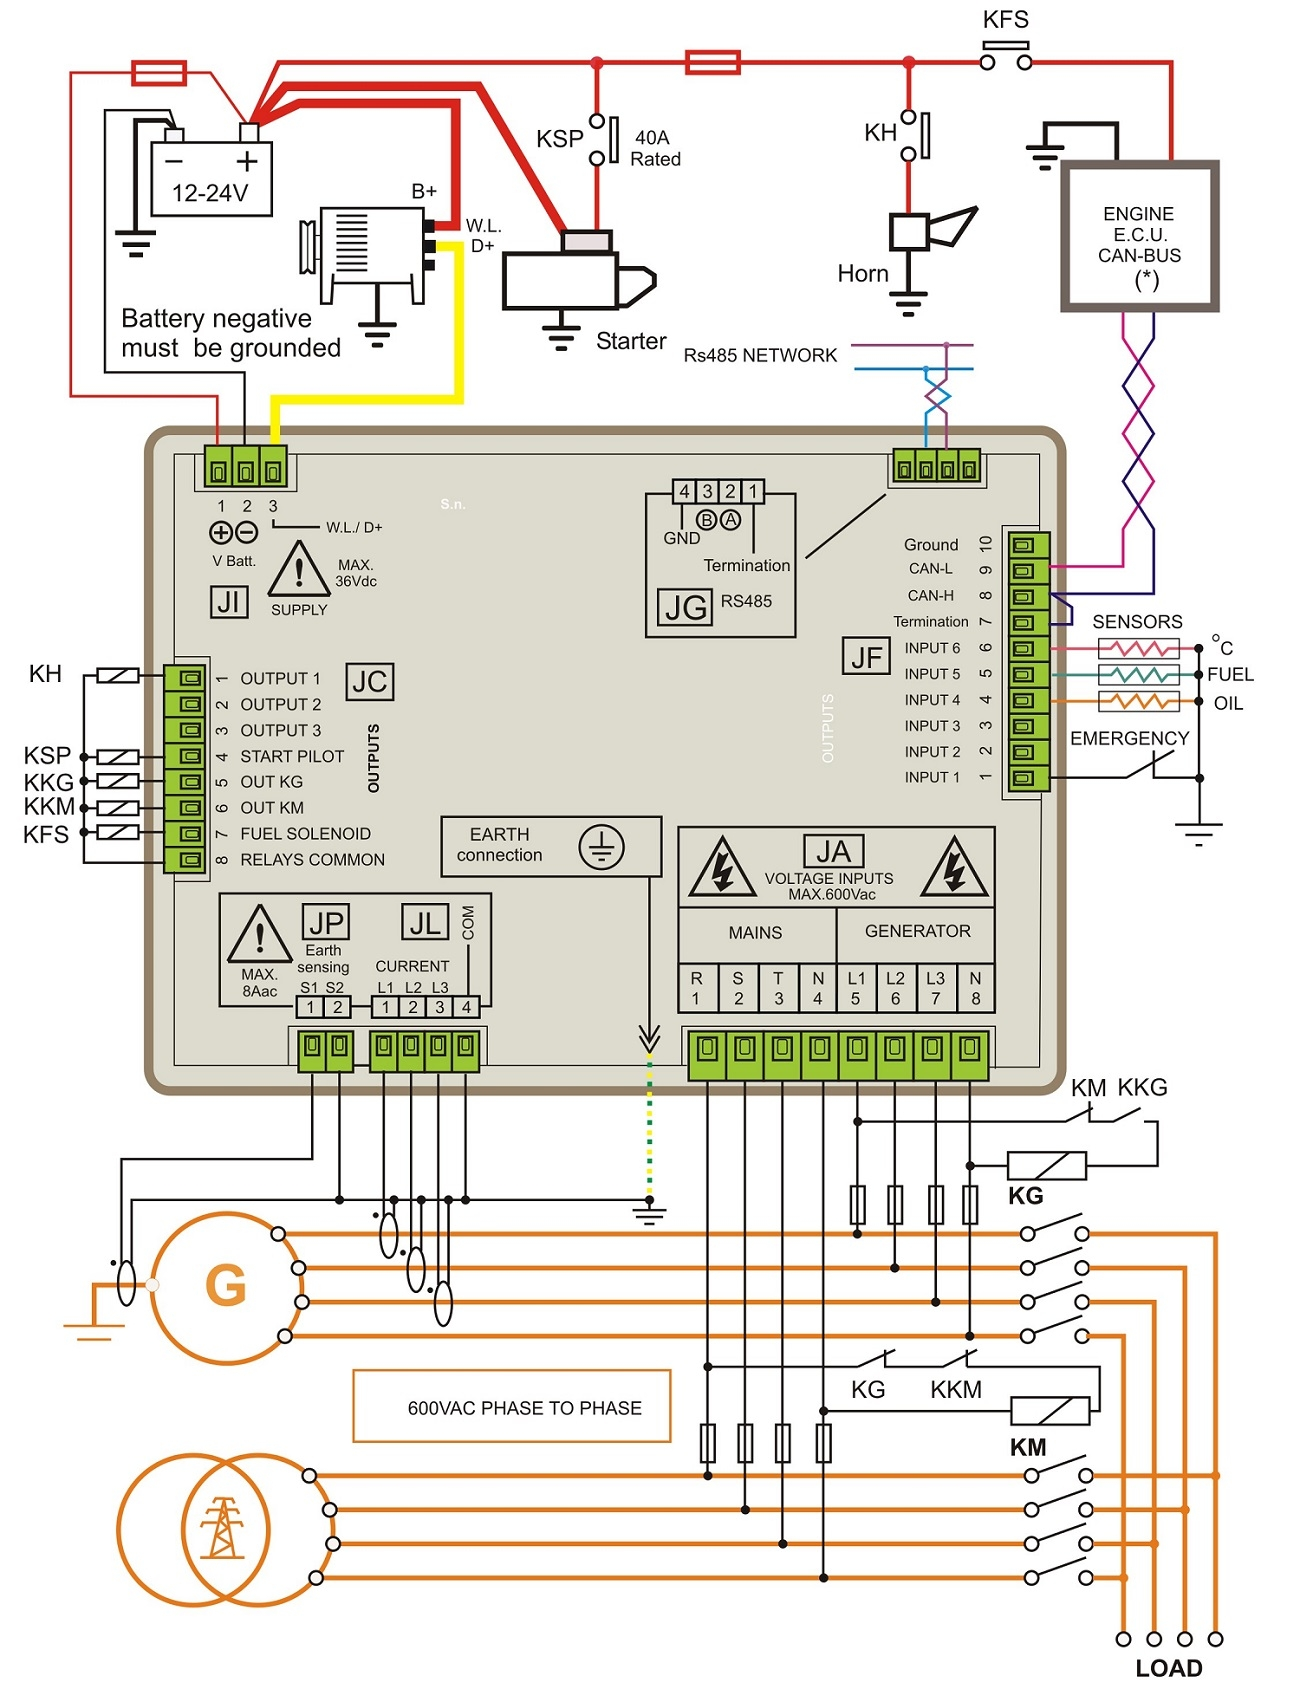 standby generator wiring diagram Download-Generator control panel wiring diagram 10-o